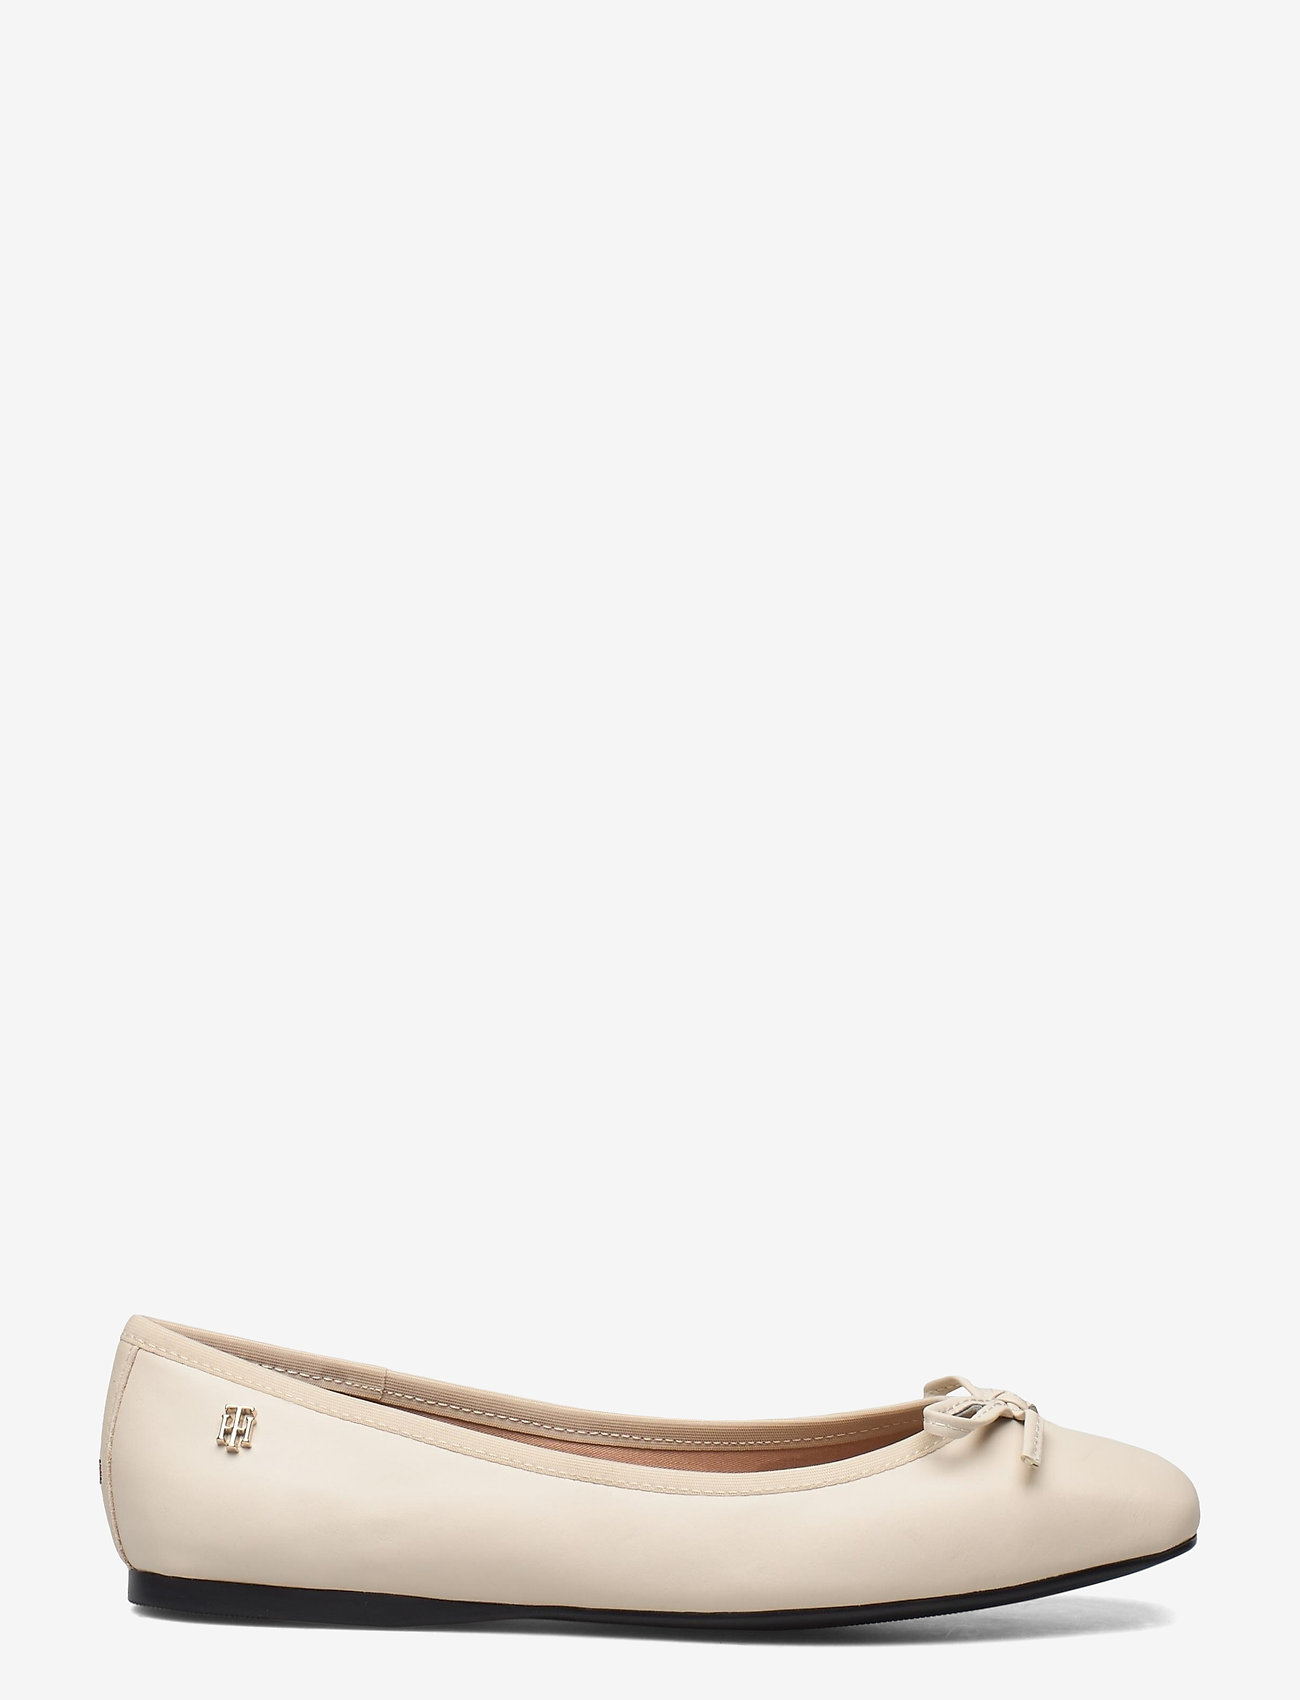 Tommy Hilfiger - ESSENTIAL SQUARE TOE BALLERINA - ballerinas - classic beige - 1